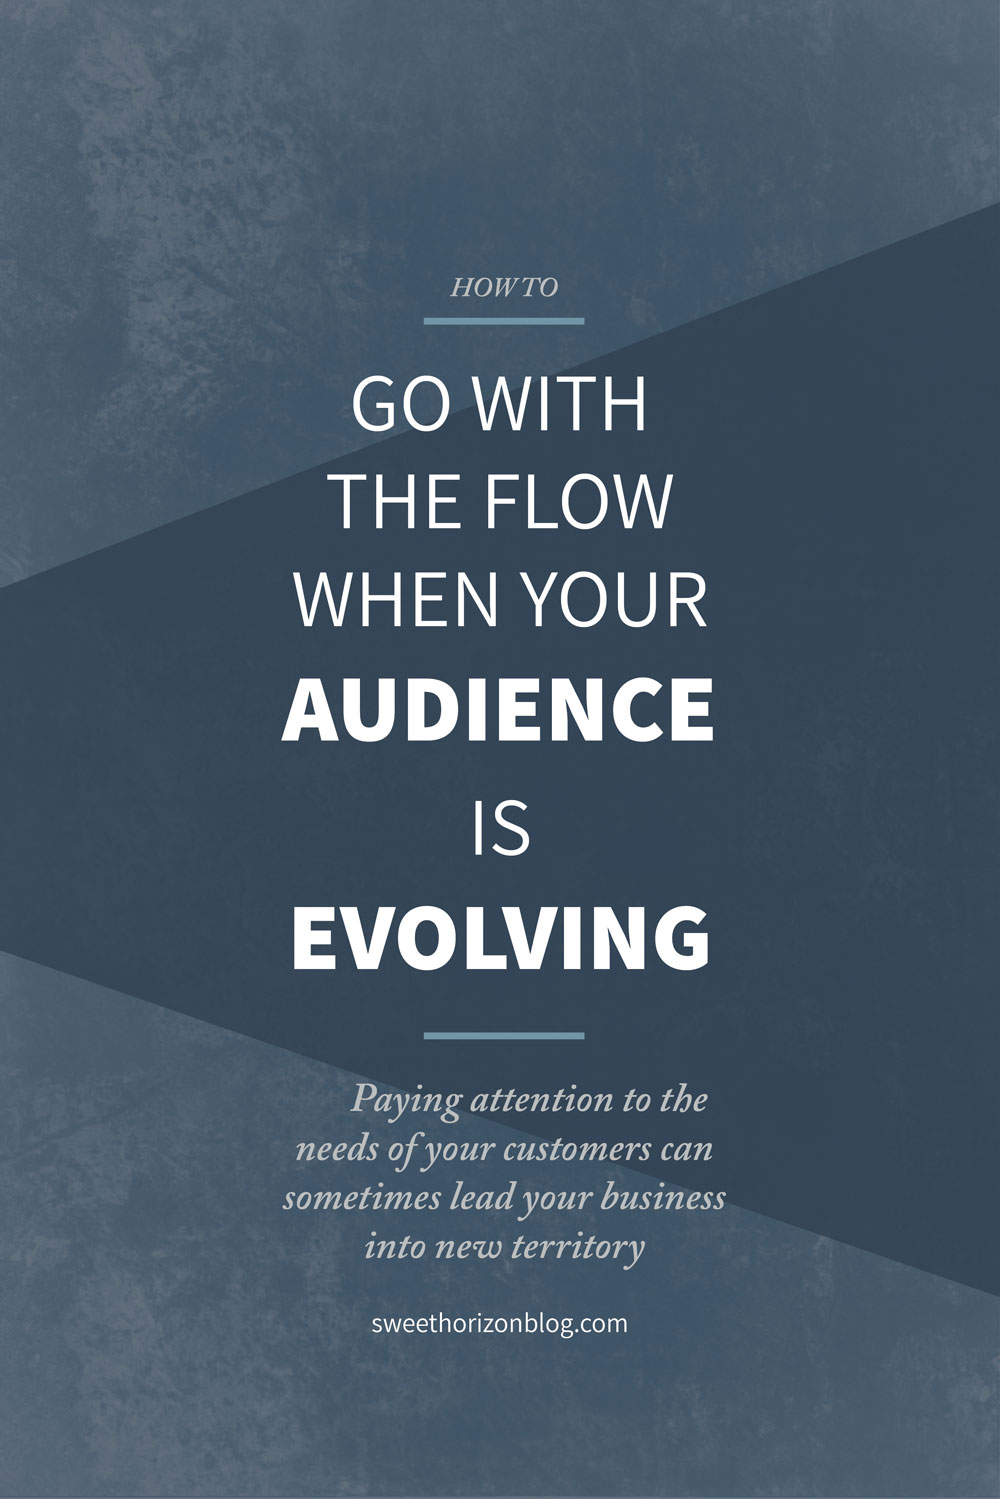 How to Go With The Flow When Your Audience is Evolving from www.sweethorizonblog.com